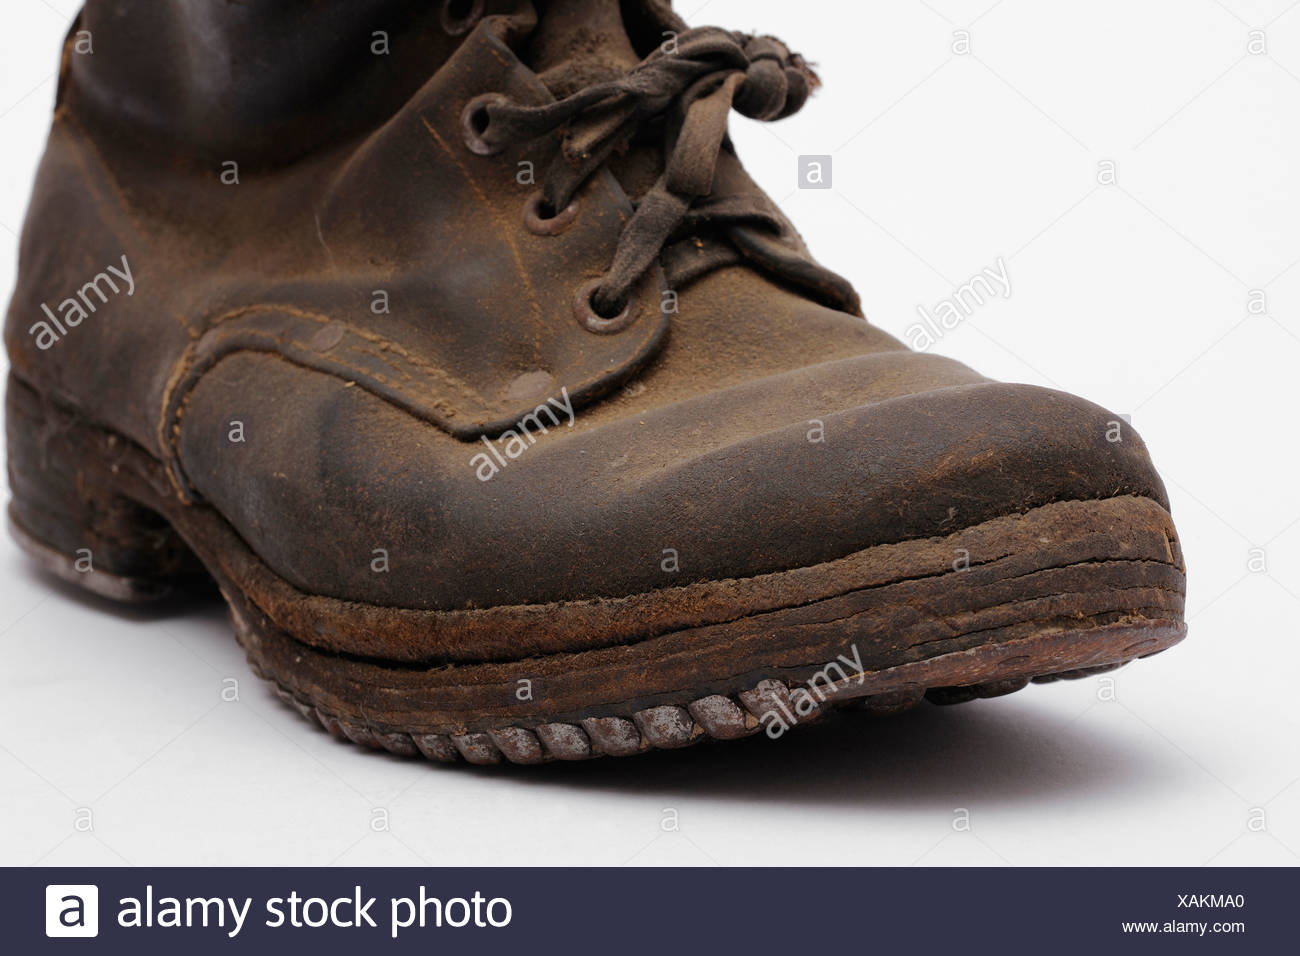 Old mountain boots with nailed soles and iron heels - Stock Image